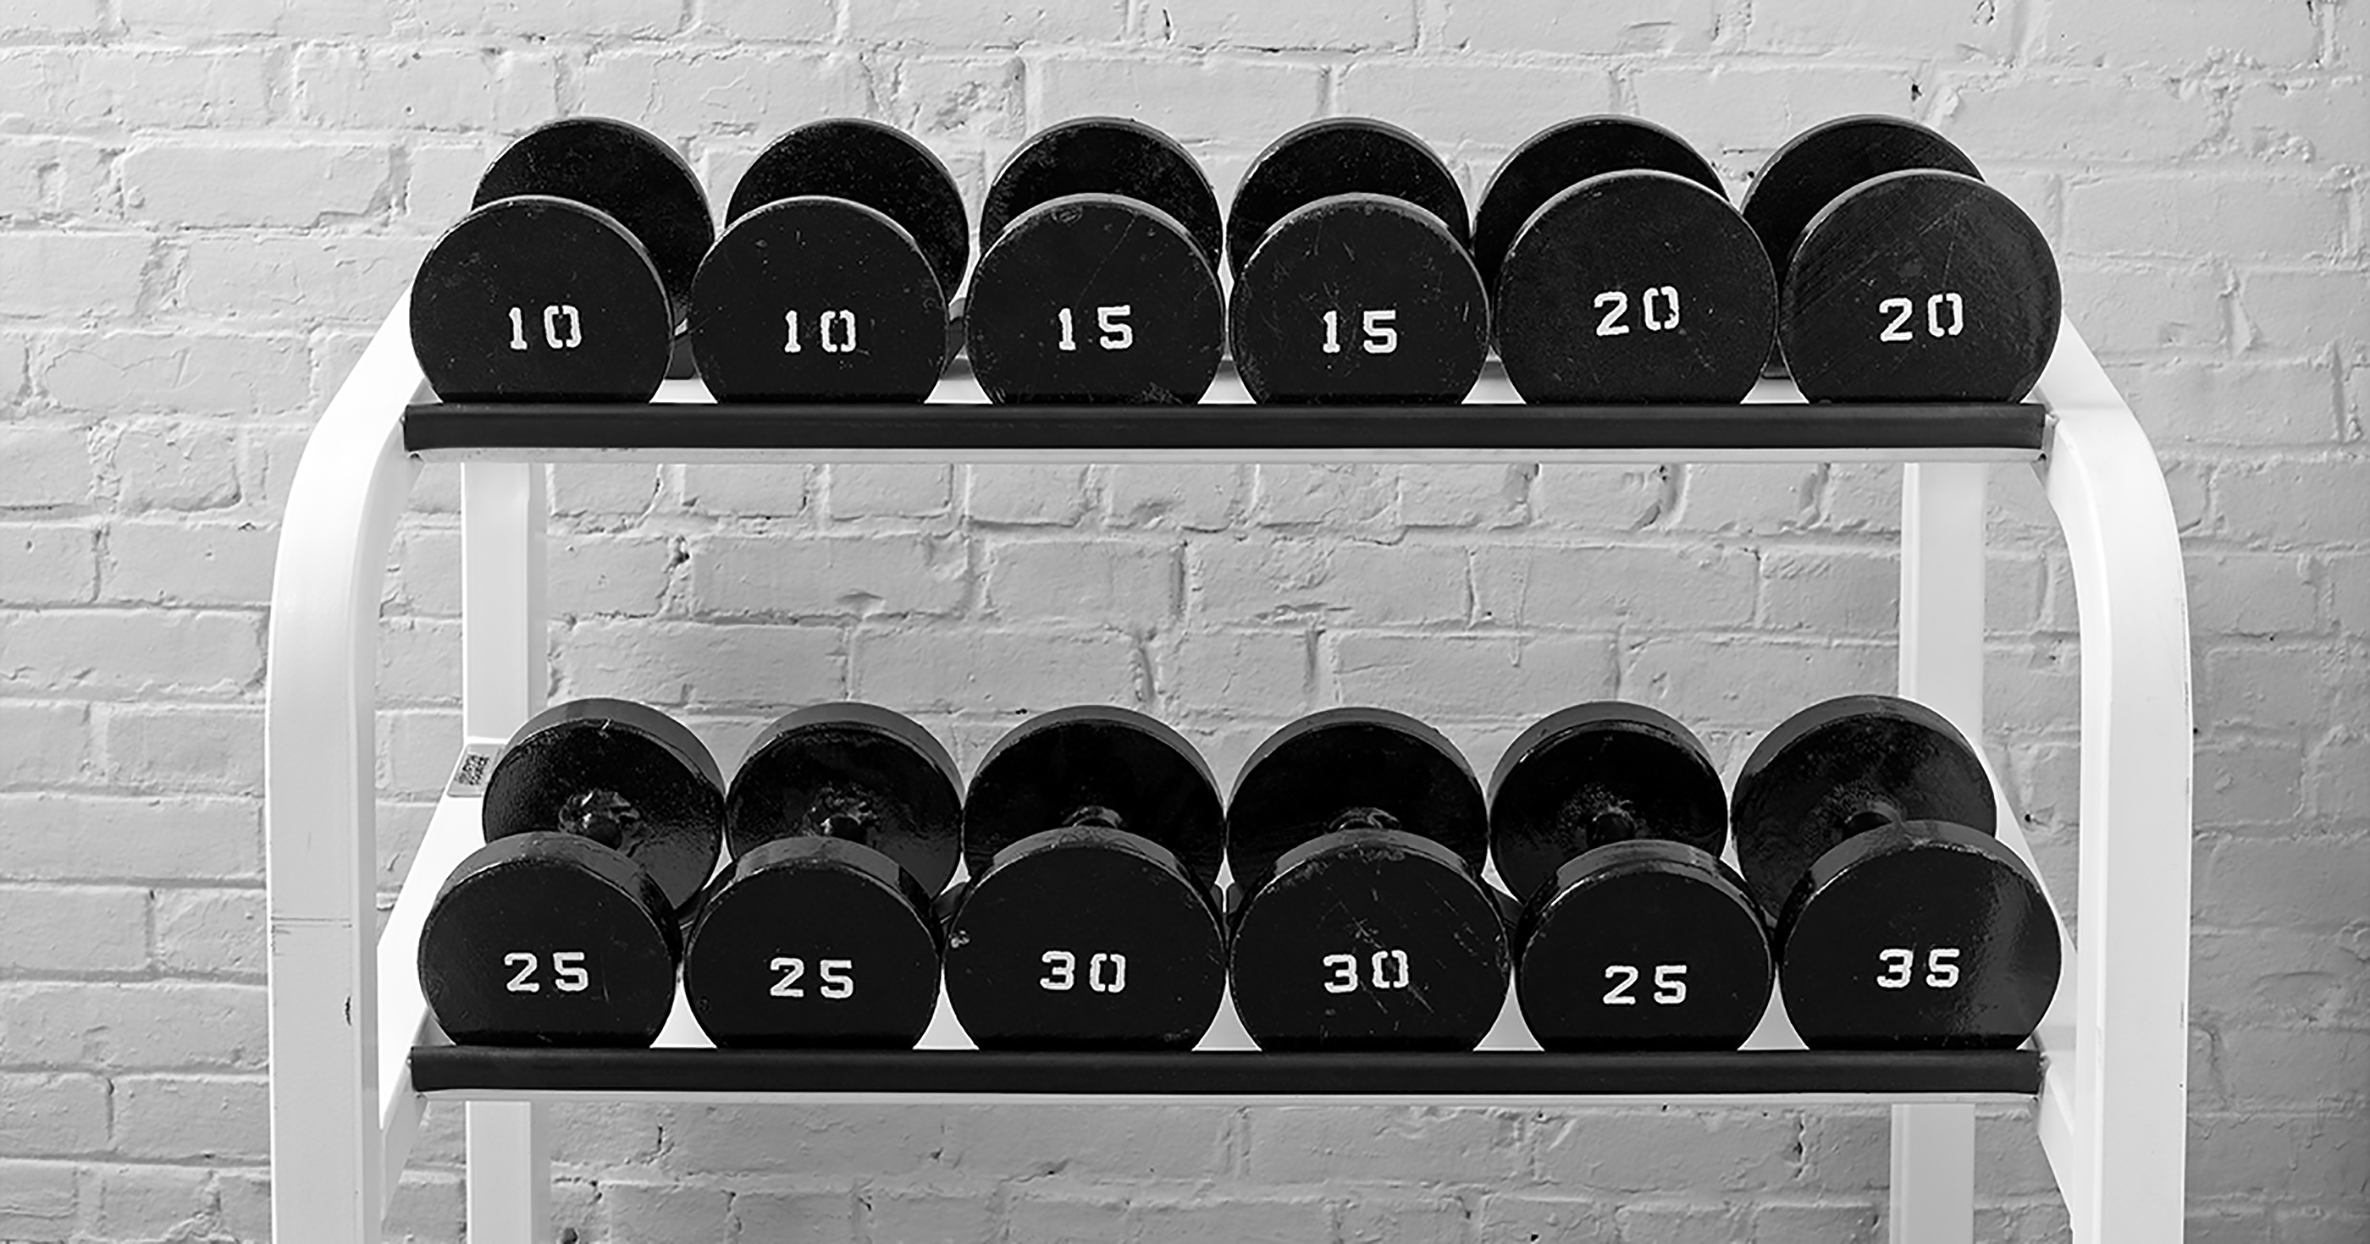 Light Weights vs. Heavy Weights—Which Should You Use?